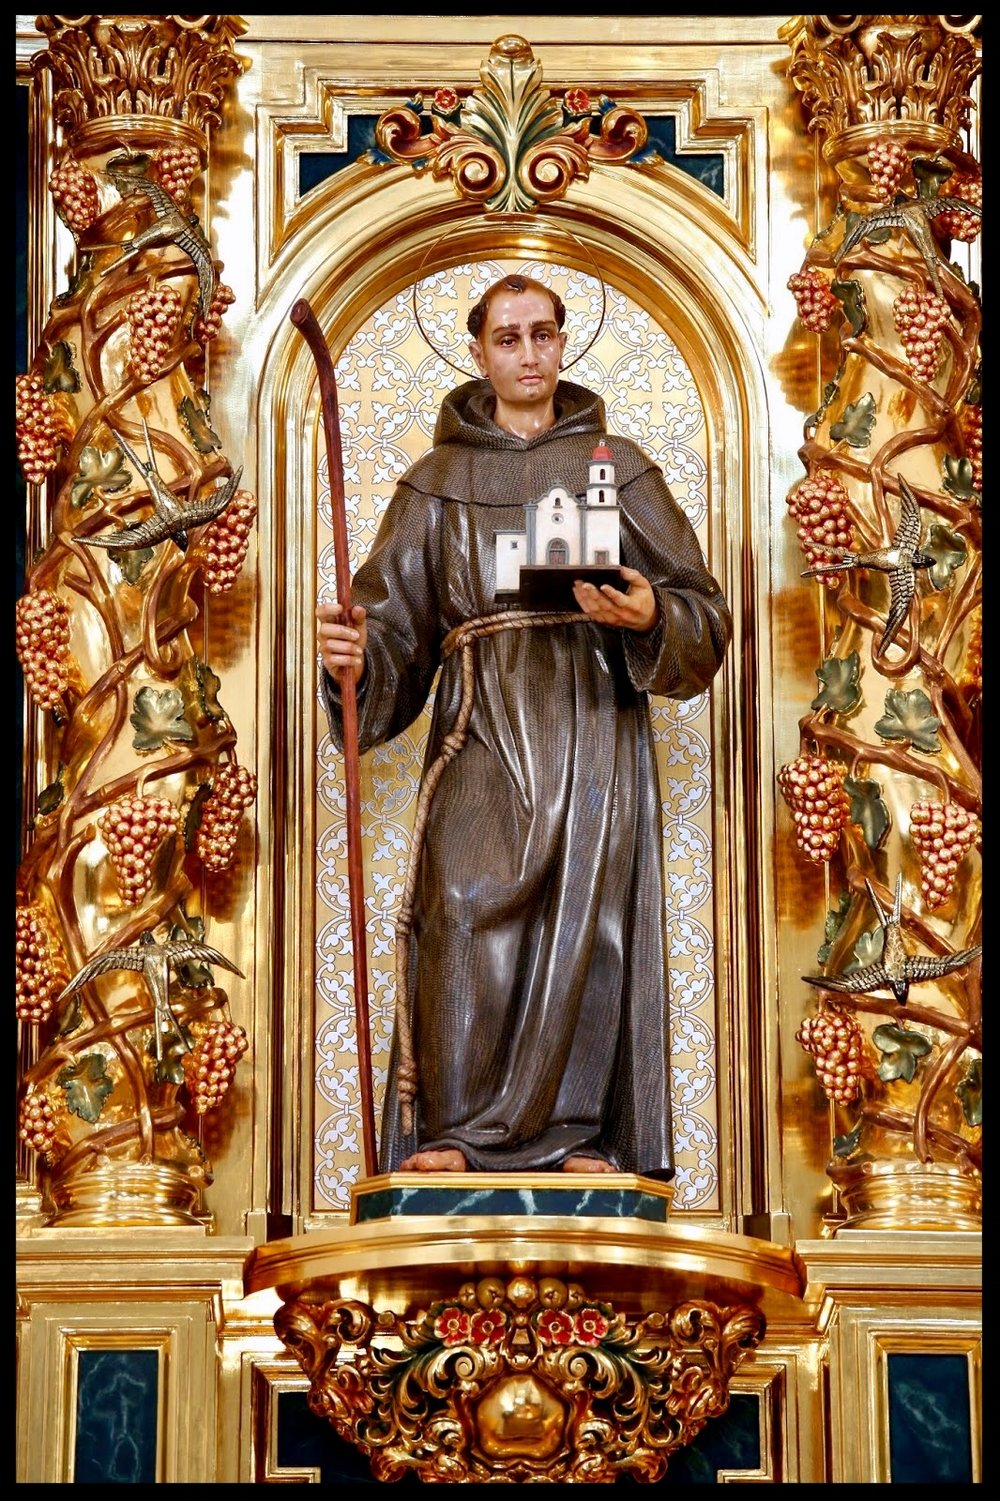 The statue of St. Junípero Serra in the Great Retablo of Mission Basilica San Juan Capistrano